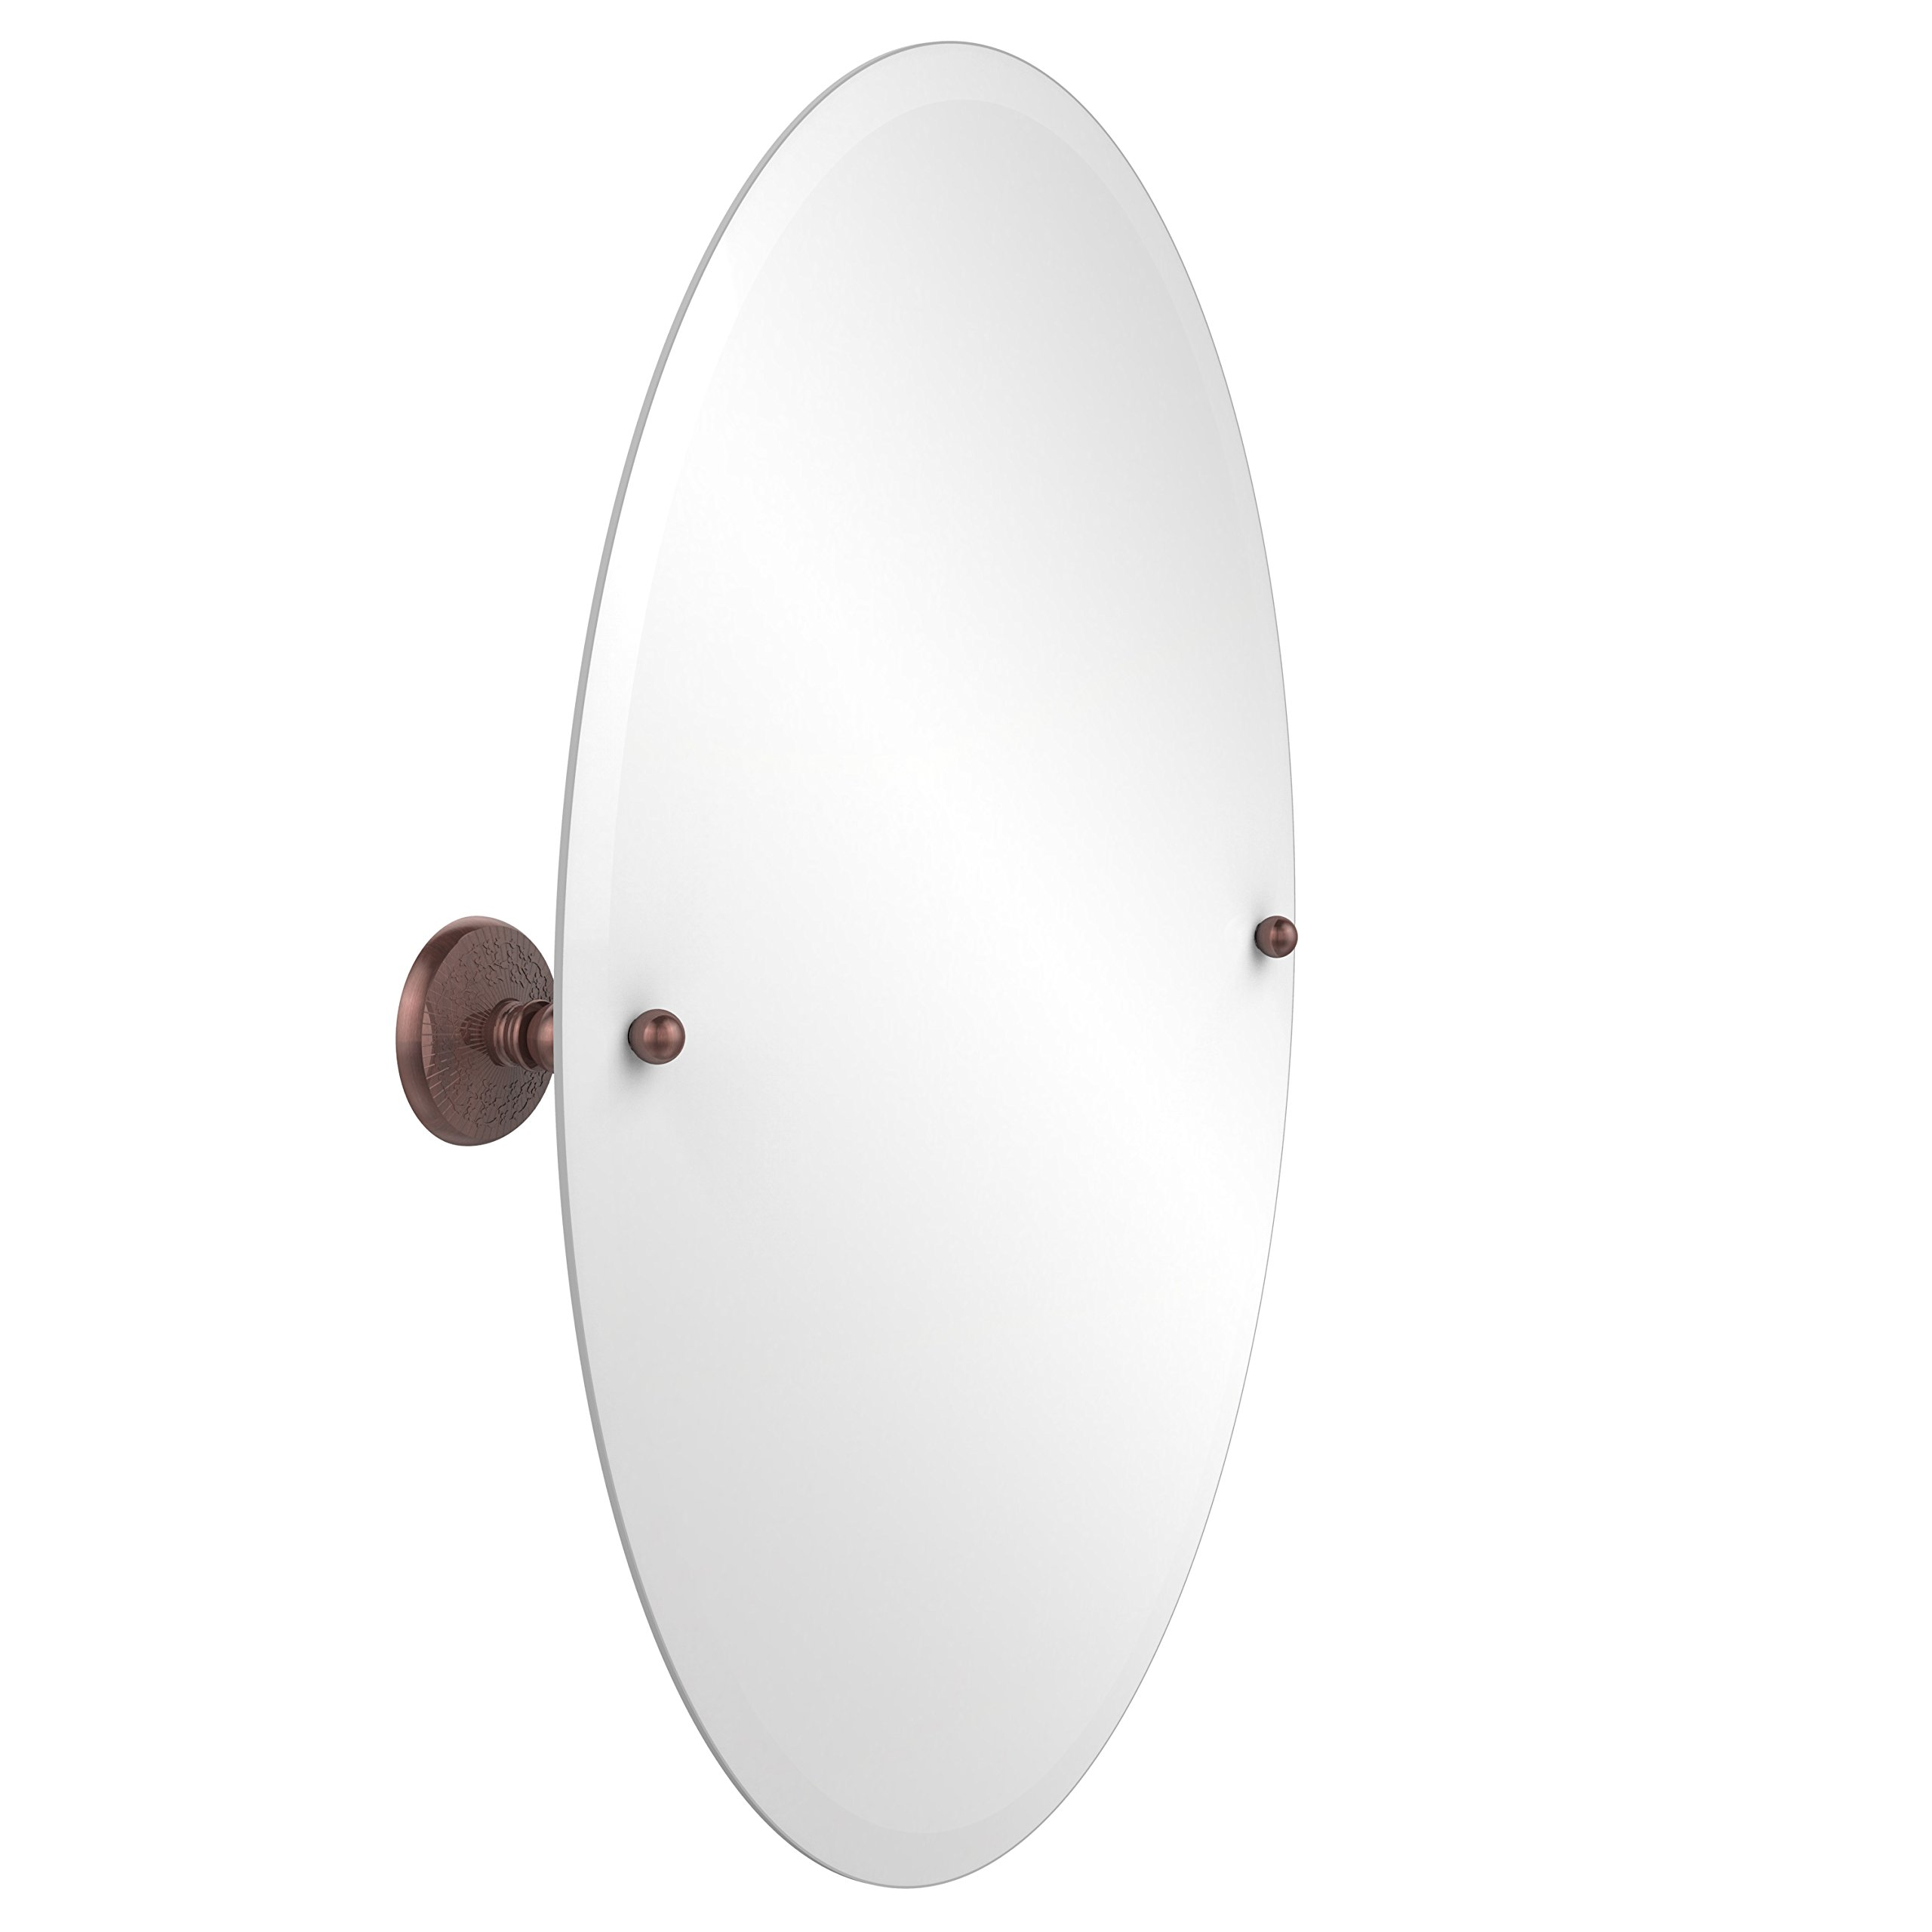 Allied Brass PMC-91-CA  29-Inch X 21-Inch Oval Tilt Mirror, Antique Copper by Allied Brass